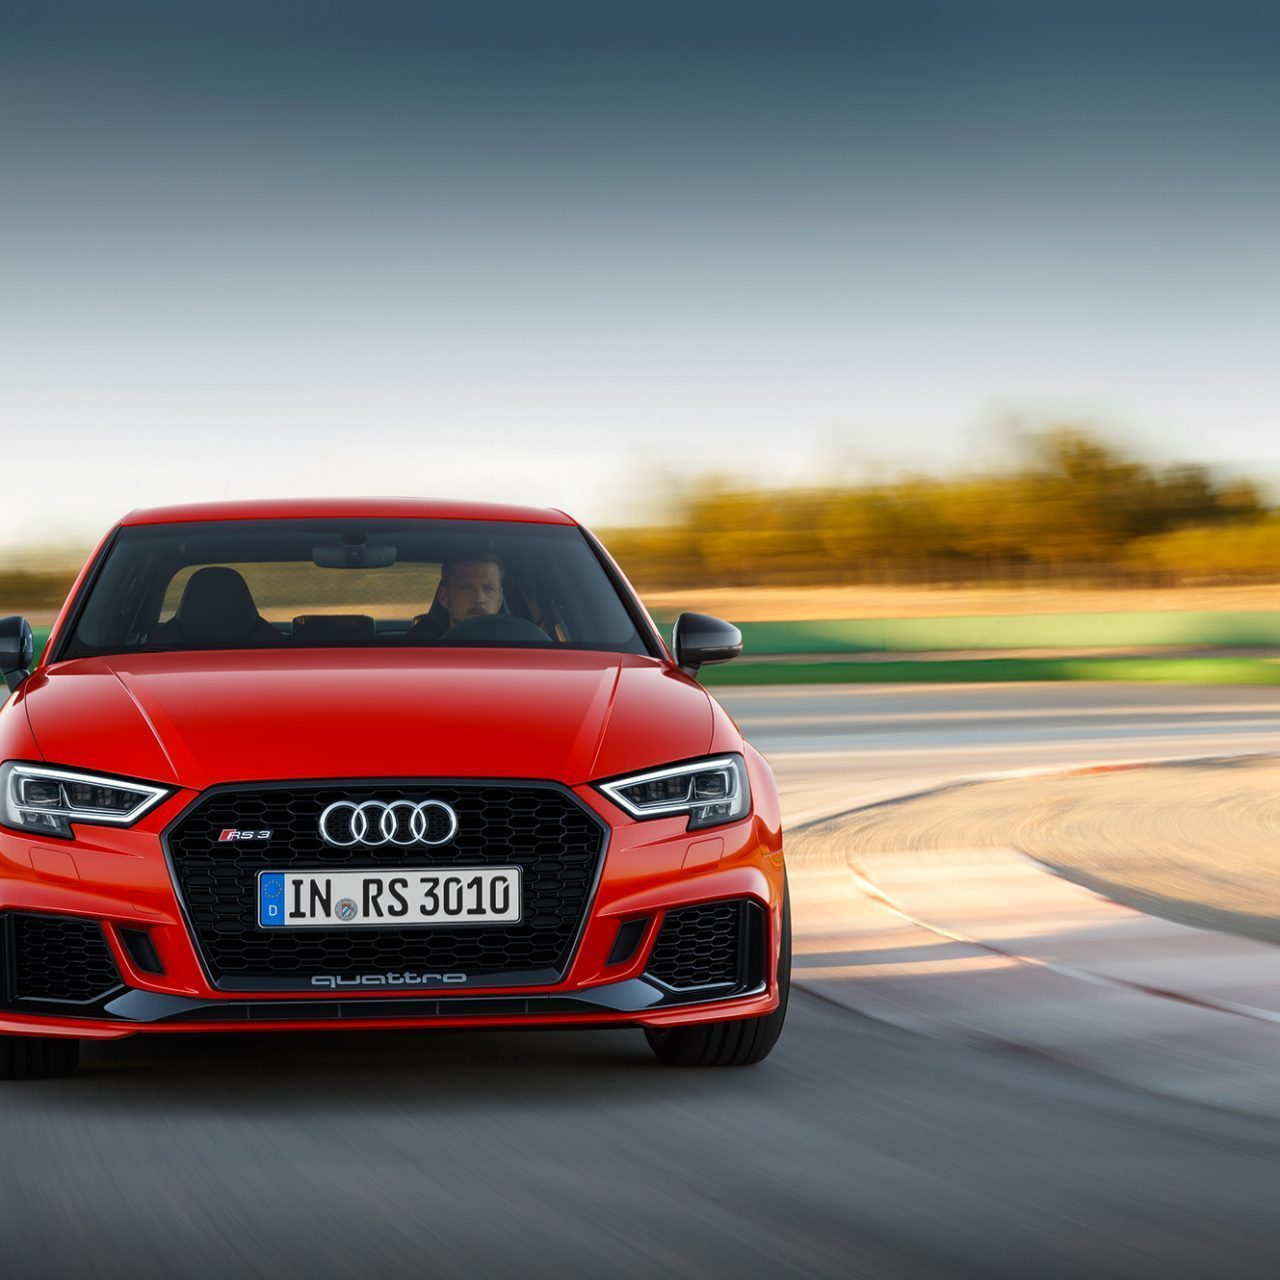 Audi Rs3 Wallpapers Scalsys S3 Wallpaper Iphone New Audi Rs3 2178789 Hd Wallpaper Backgrounds Download